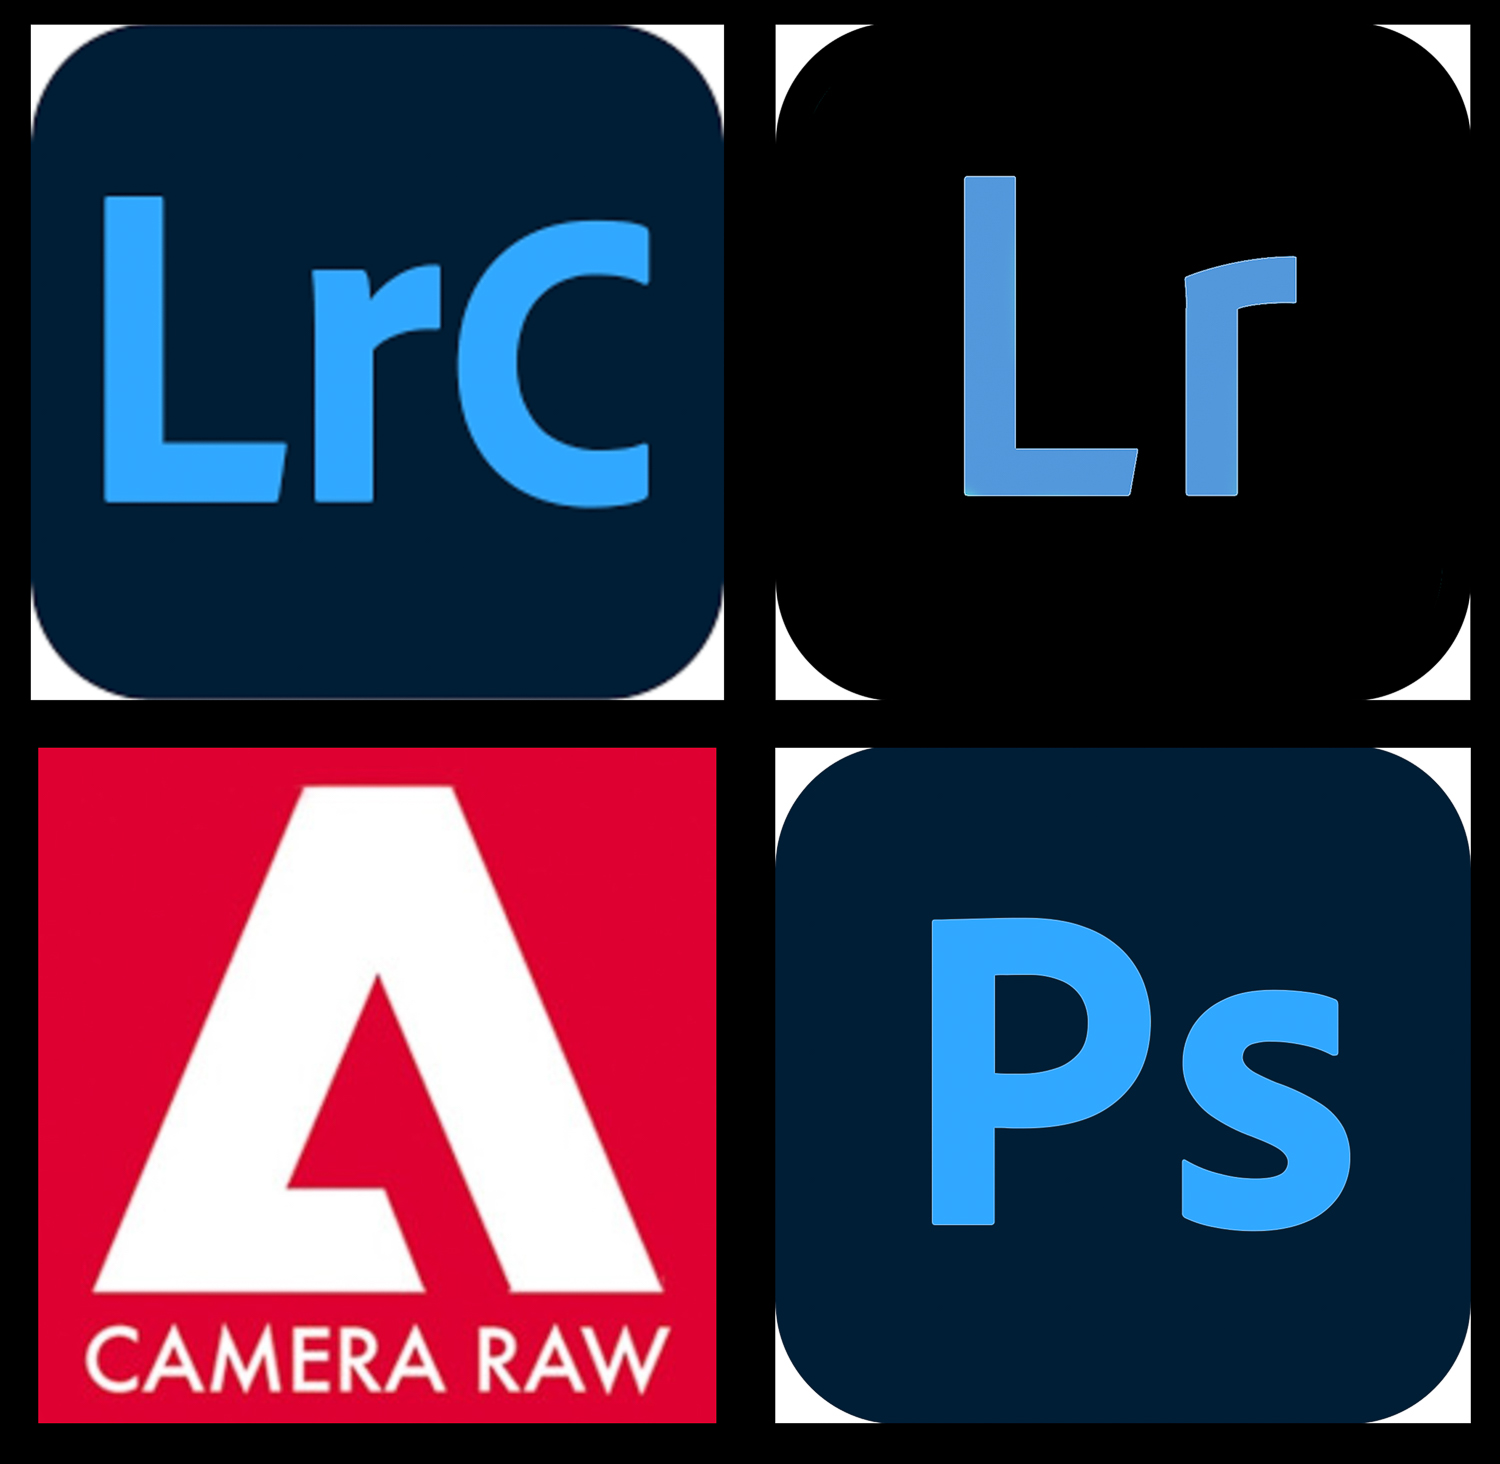 Adobe Photo Editing programs